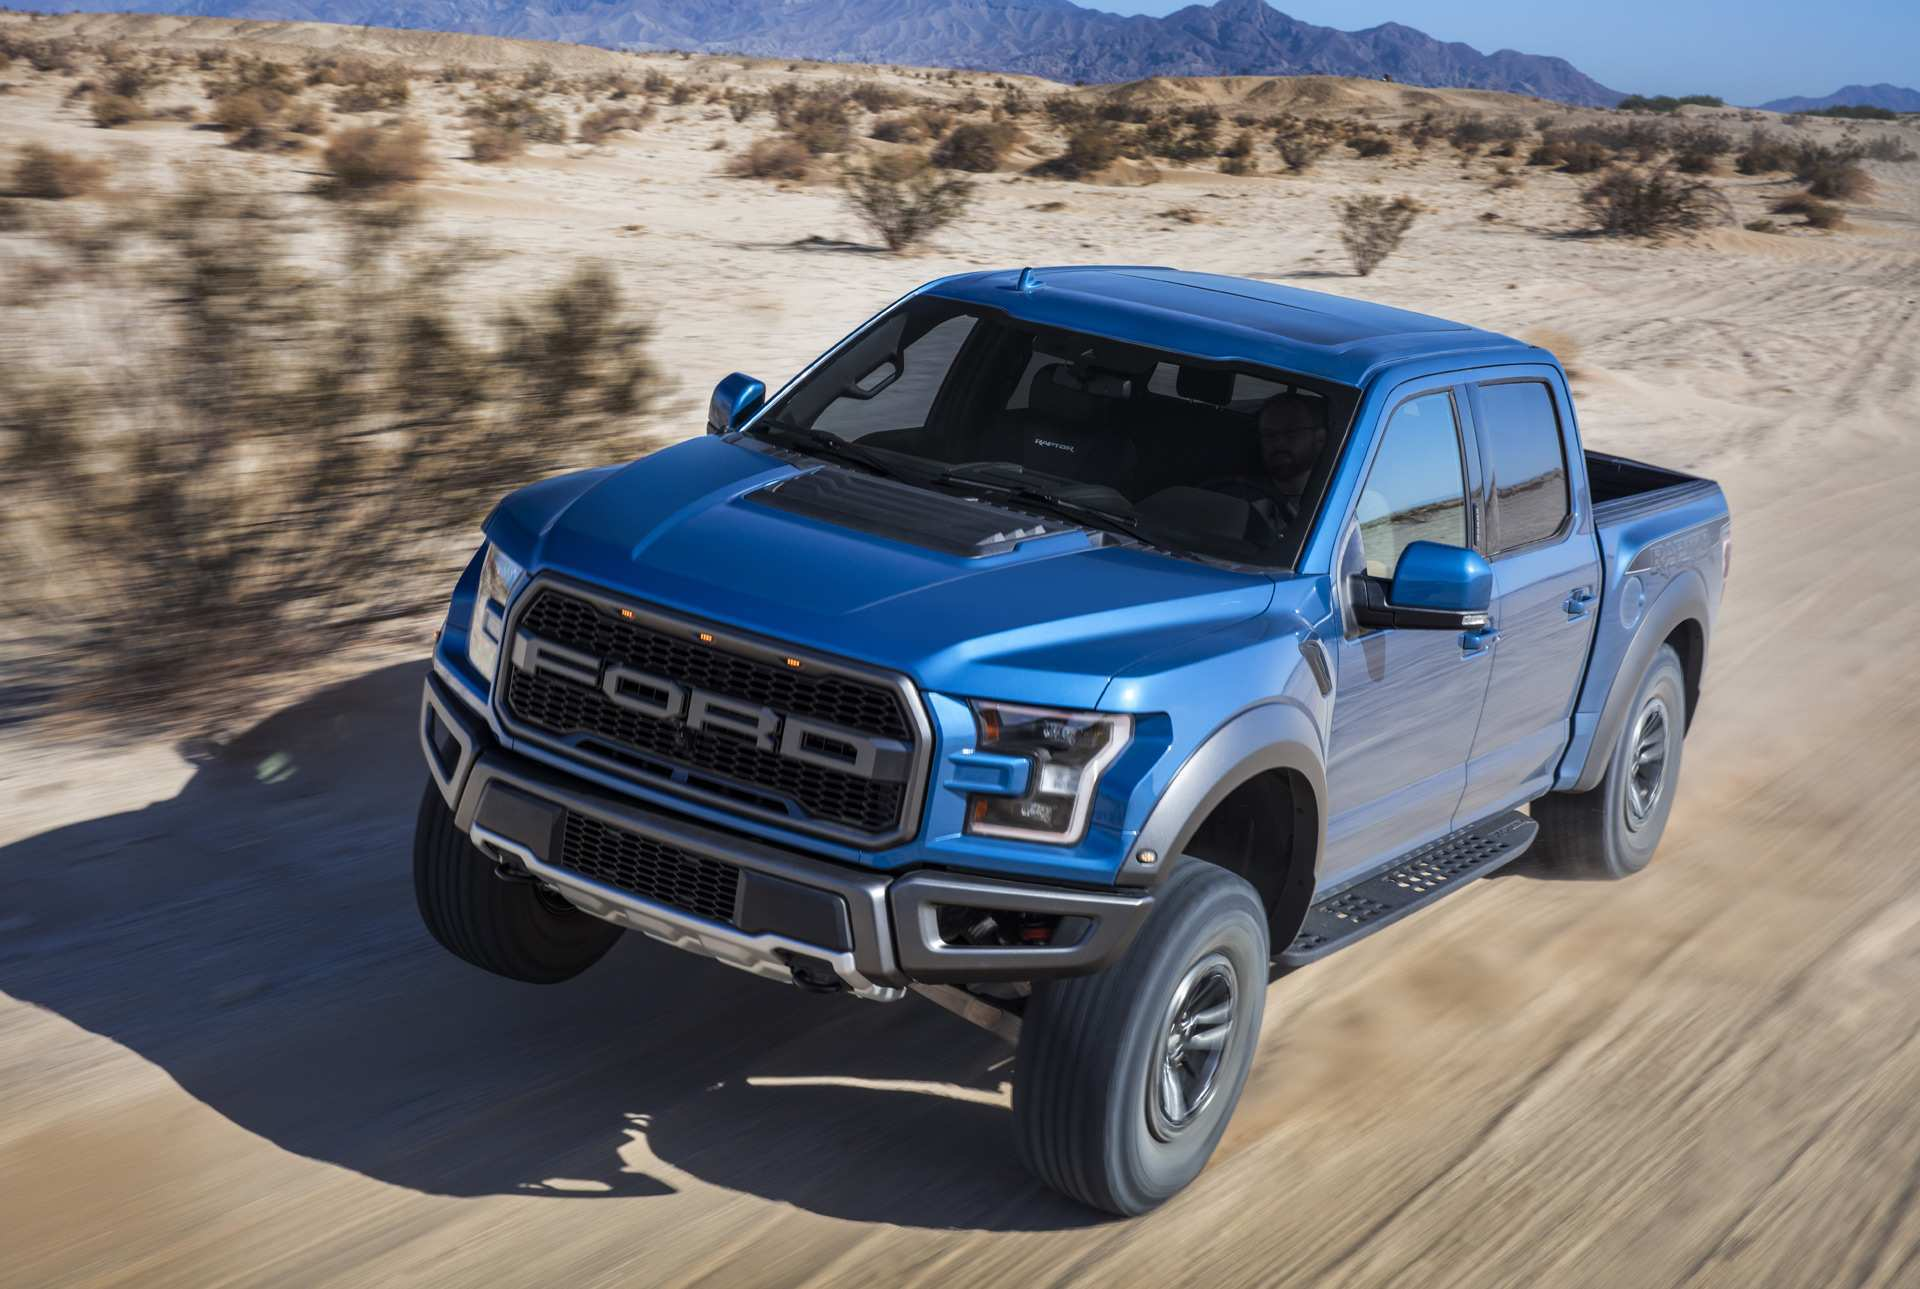 40 The Best 2019 All Ford F150 Raptor Wallpaper